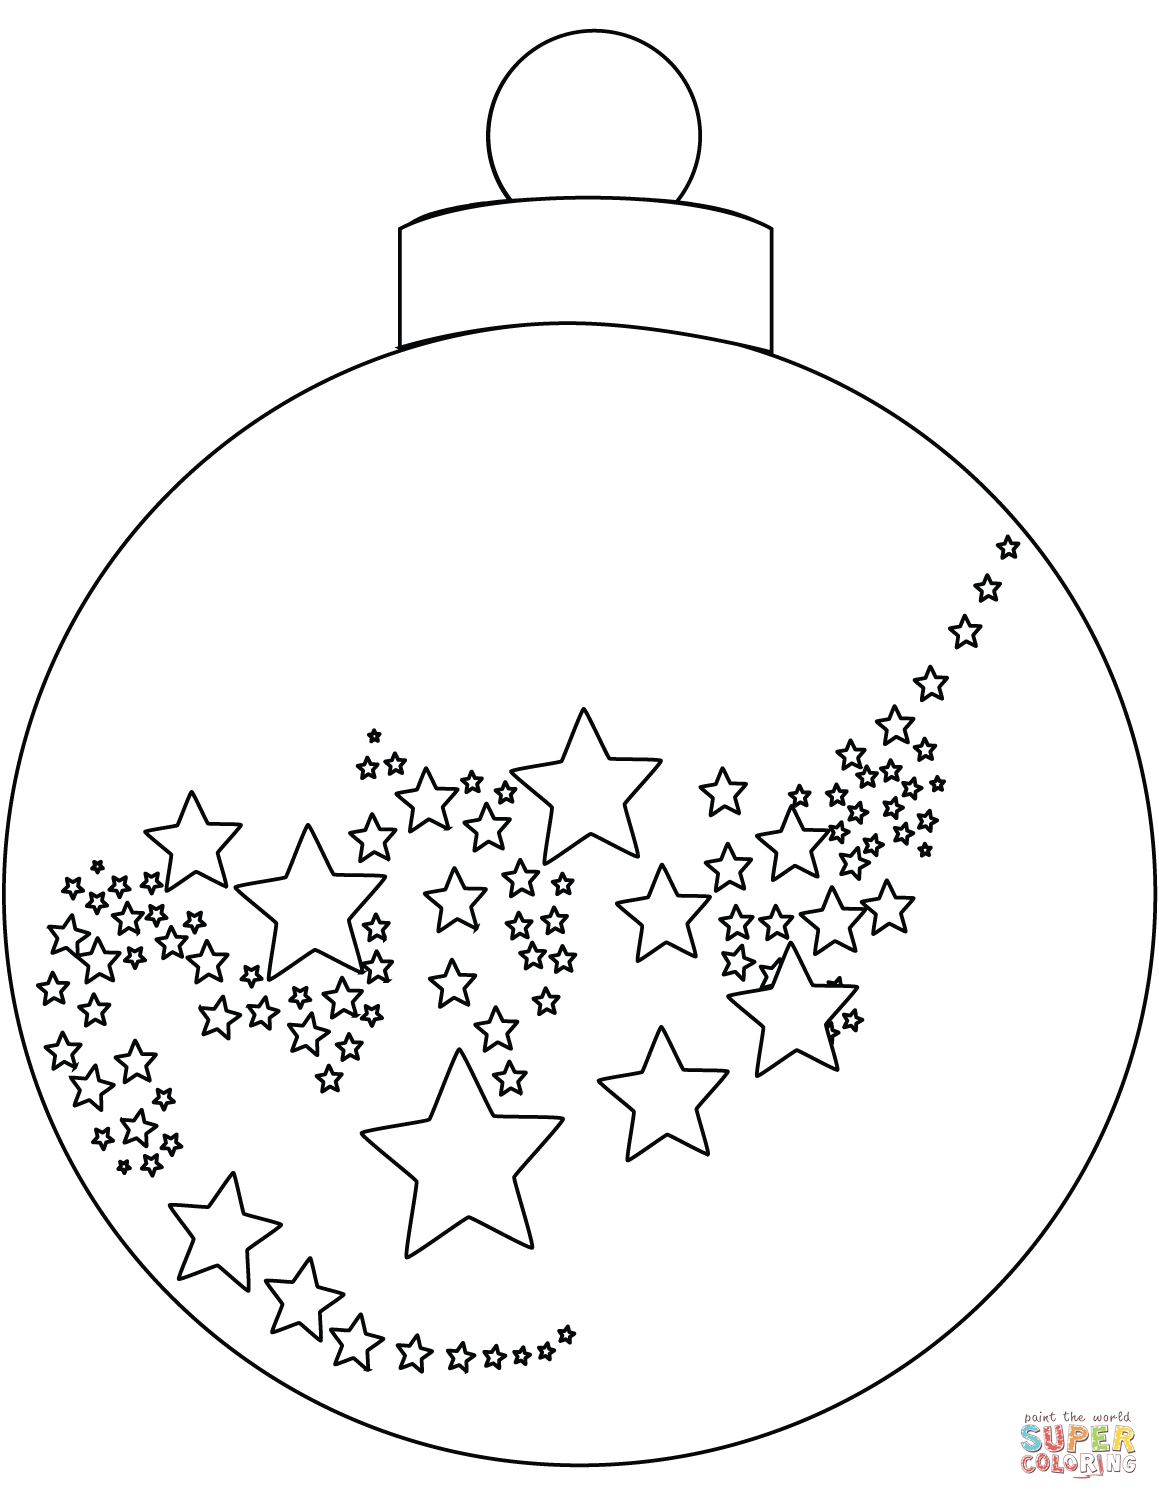 Christmas Ornament Coloring Page | Free Printable Coloring Pages - Free Printable Christmas Ornaments